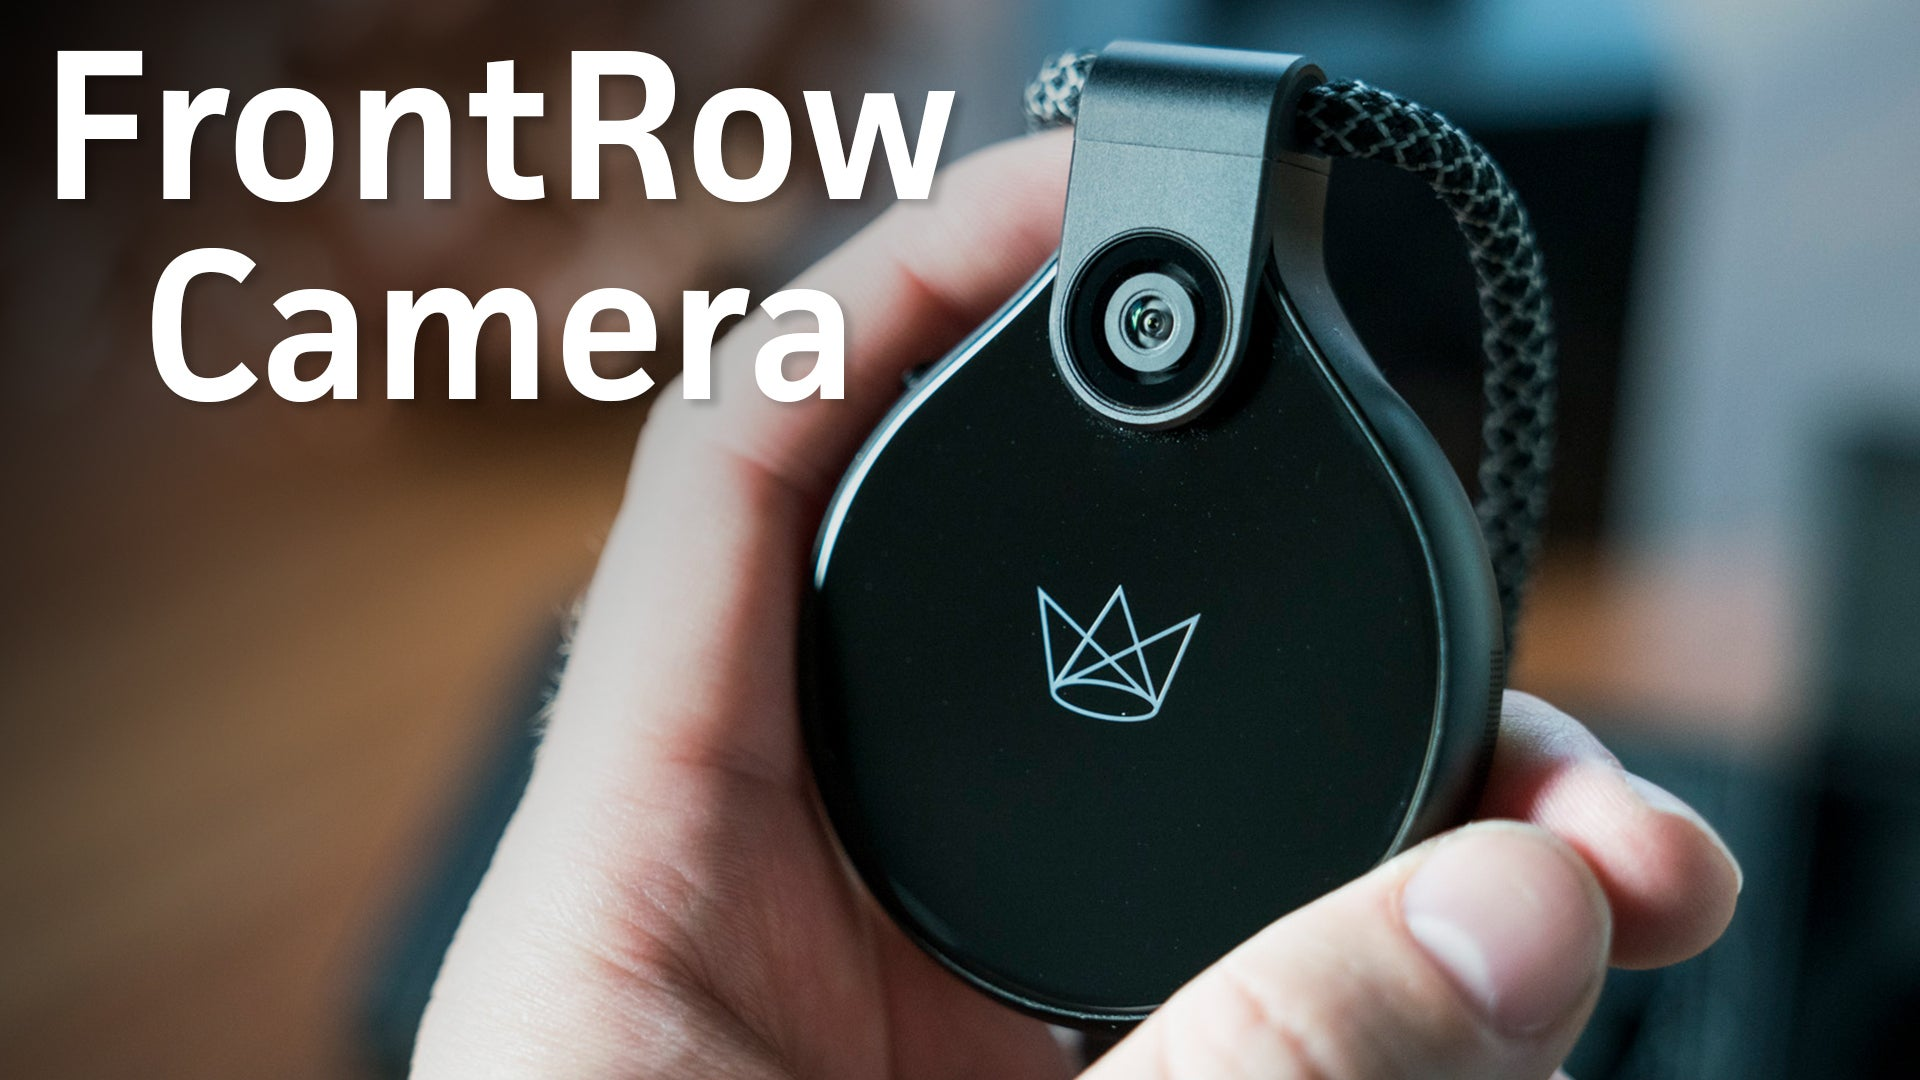 FrontRow Camera